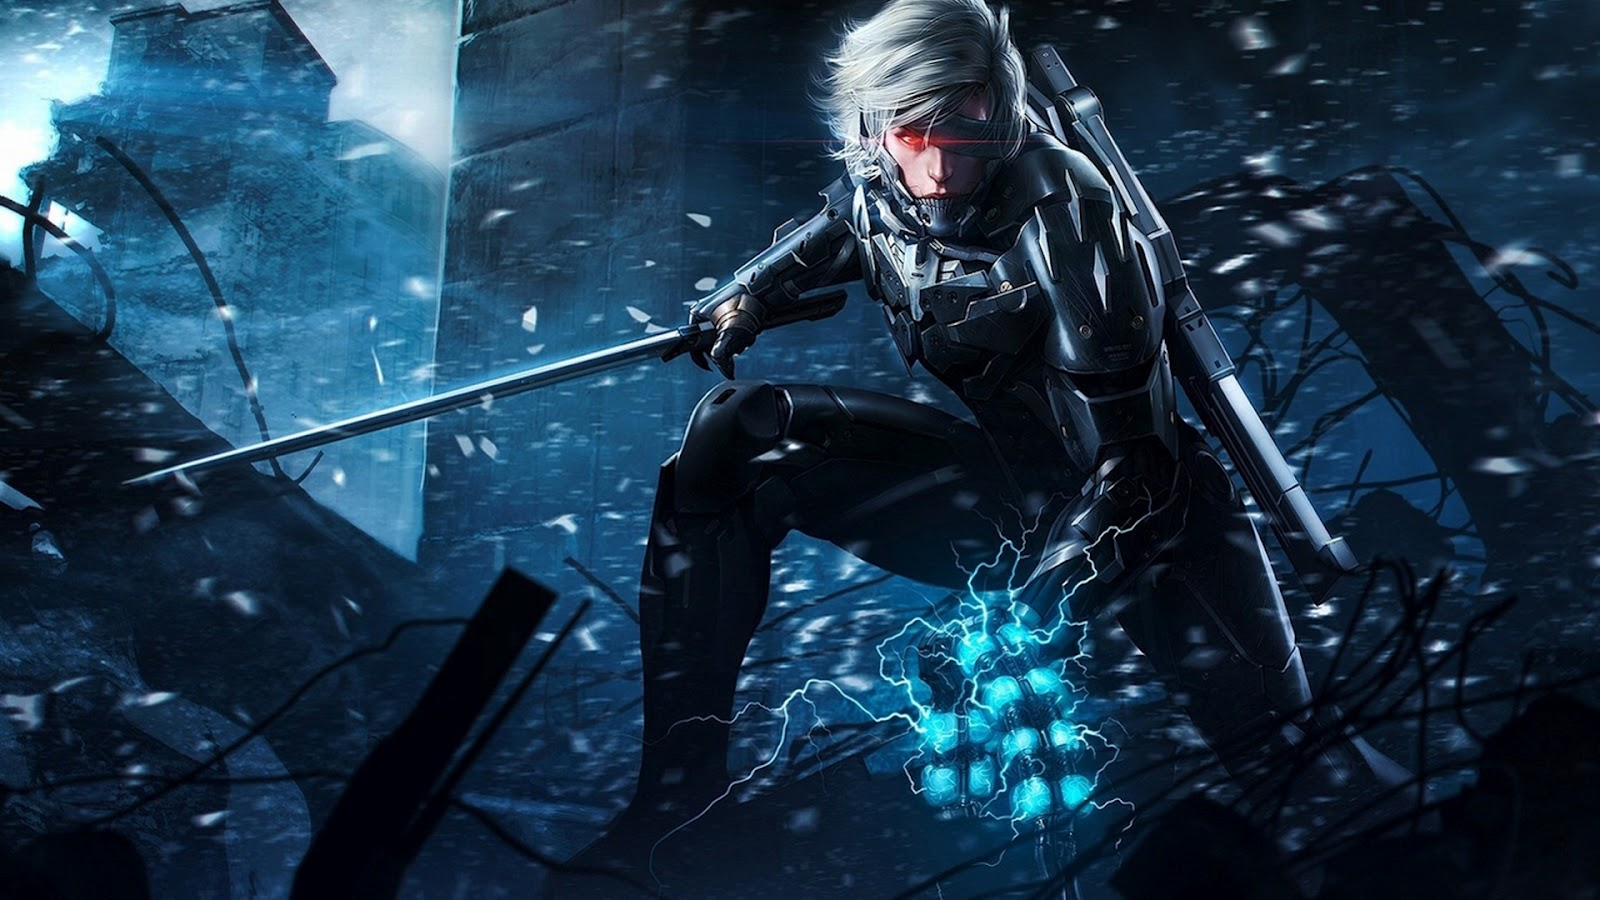 Metal Gear Solid Rising Wallpapers Metal Gear Rising: Revengeance Wallpapers in HD